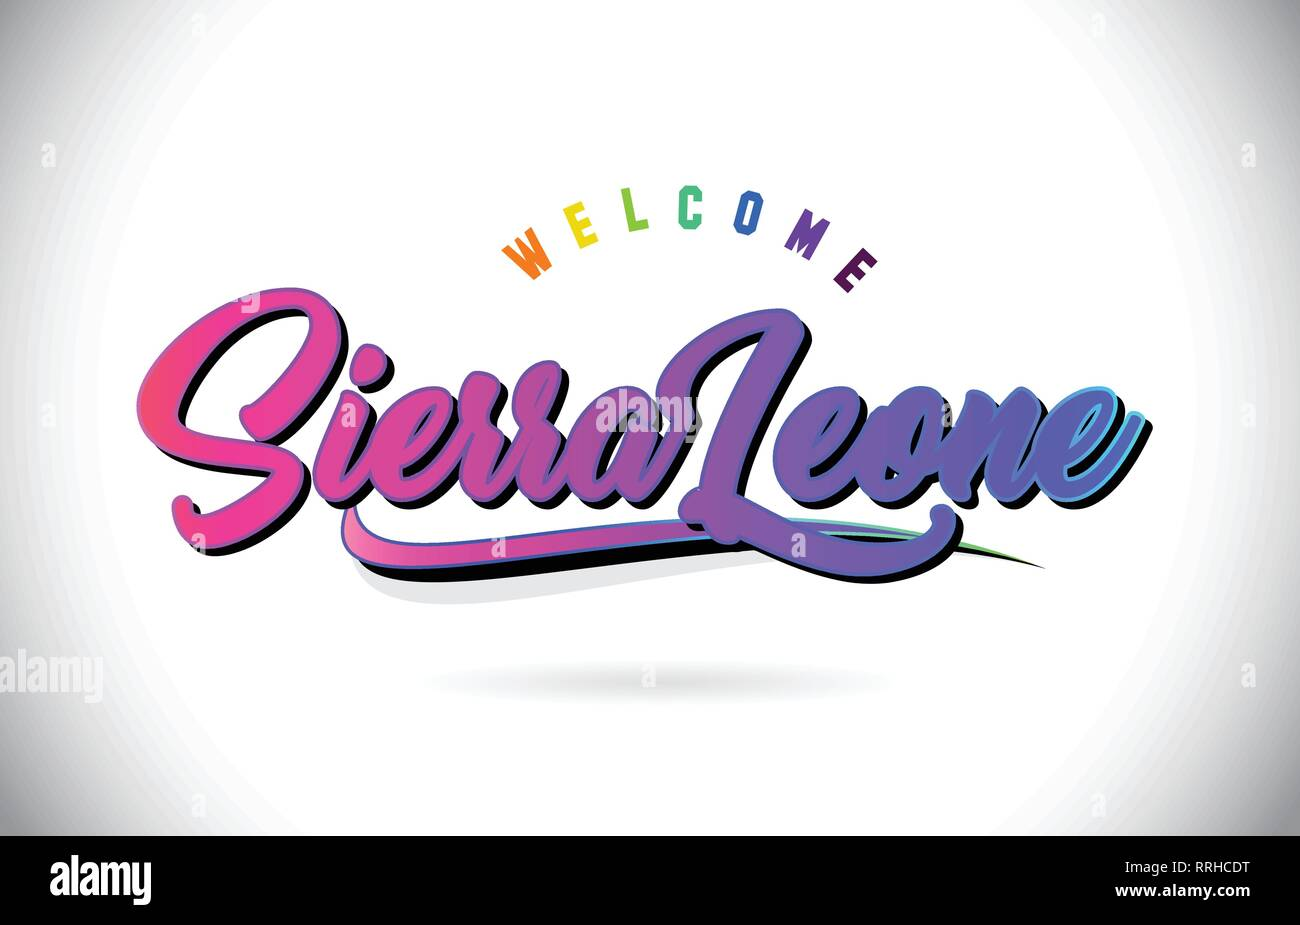 SierraLeone Welcome To Word Text with Creative Purple Pink Handwritten Font and Swoosh Shape Design Vector Illustration. Stock Vector